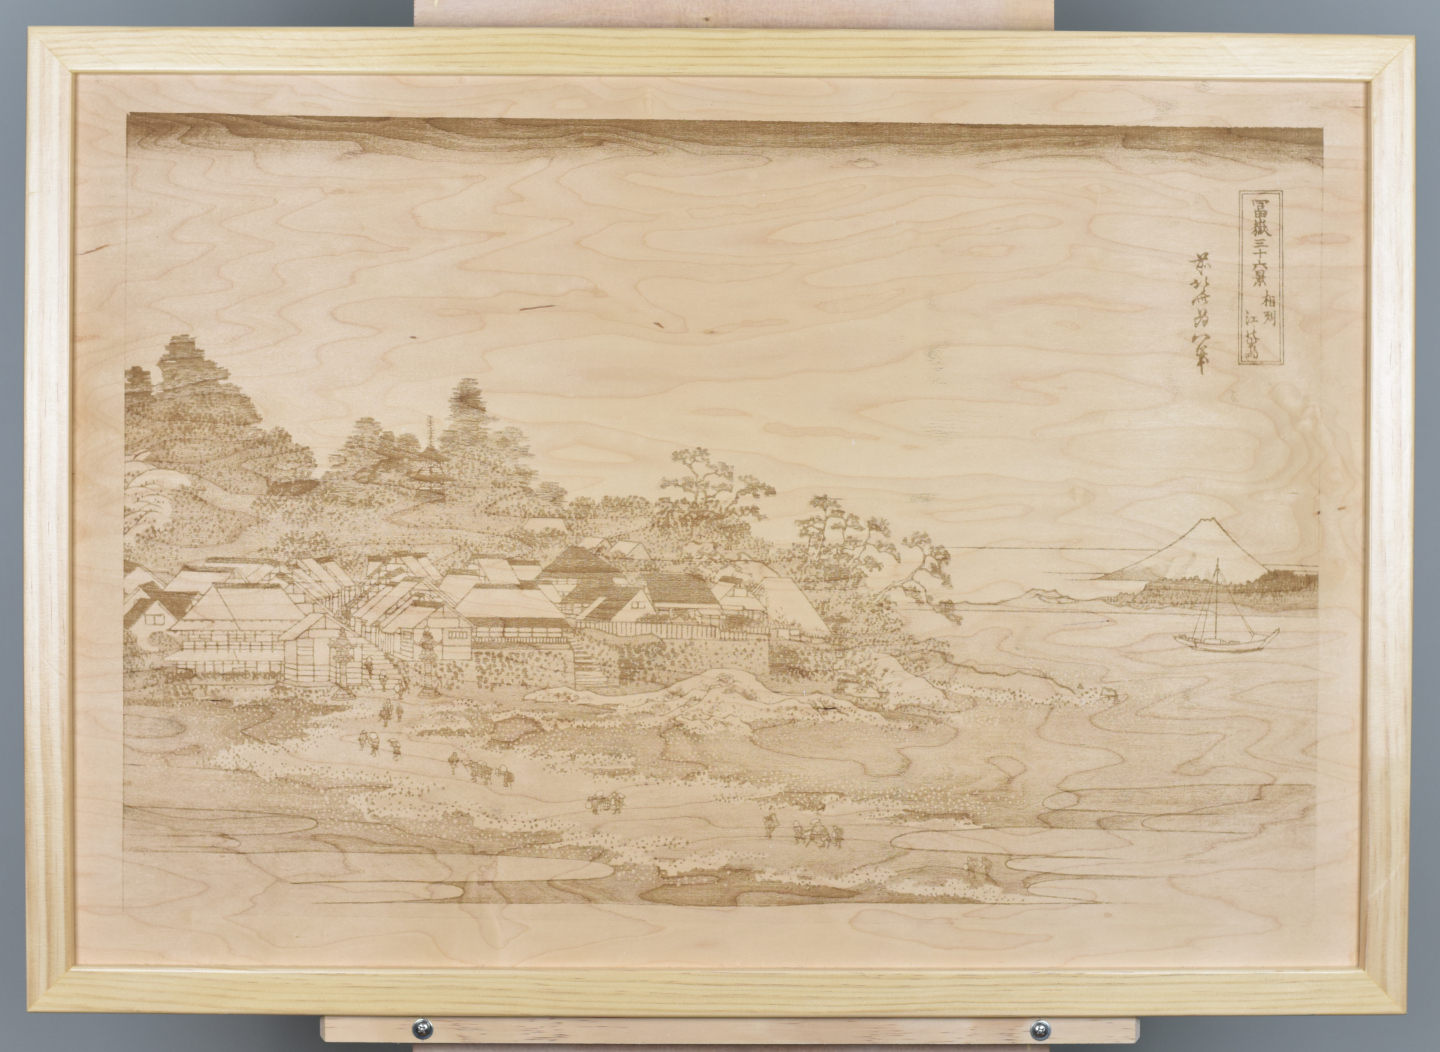 A wood burning (digital pyrograph) of Enoshima; a small island lying off Kamakura on the Pacific coast south of Tokyo in Japan's Sagami province.